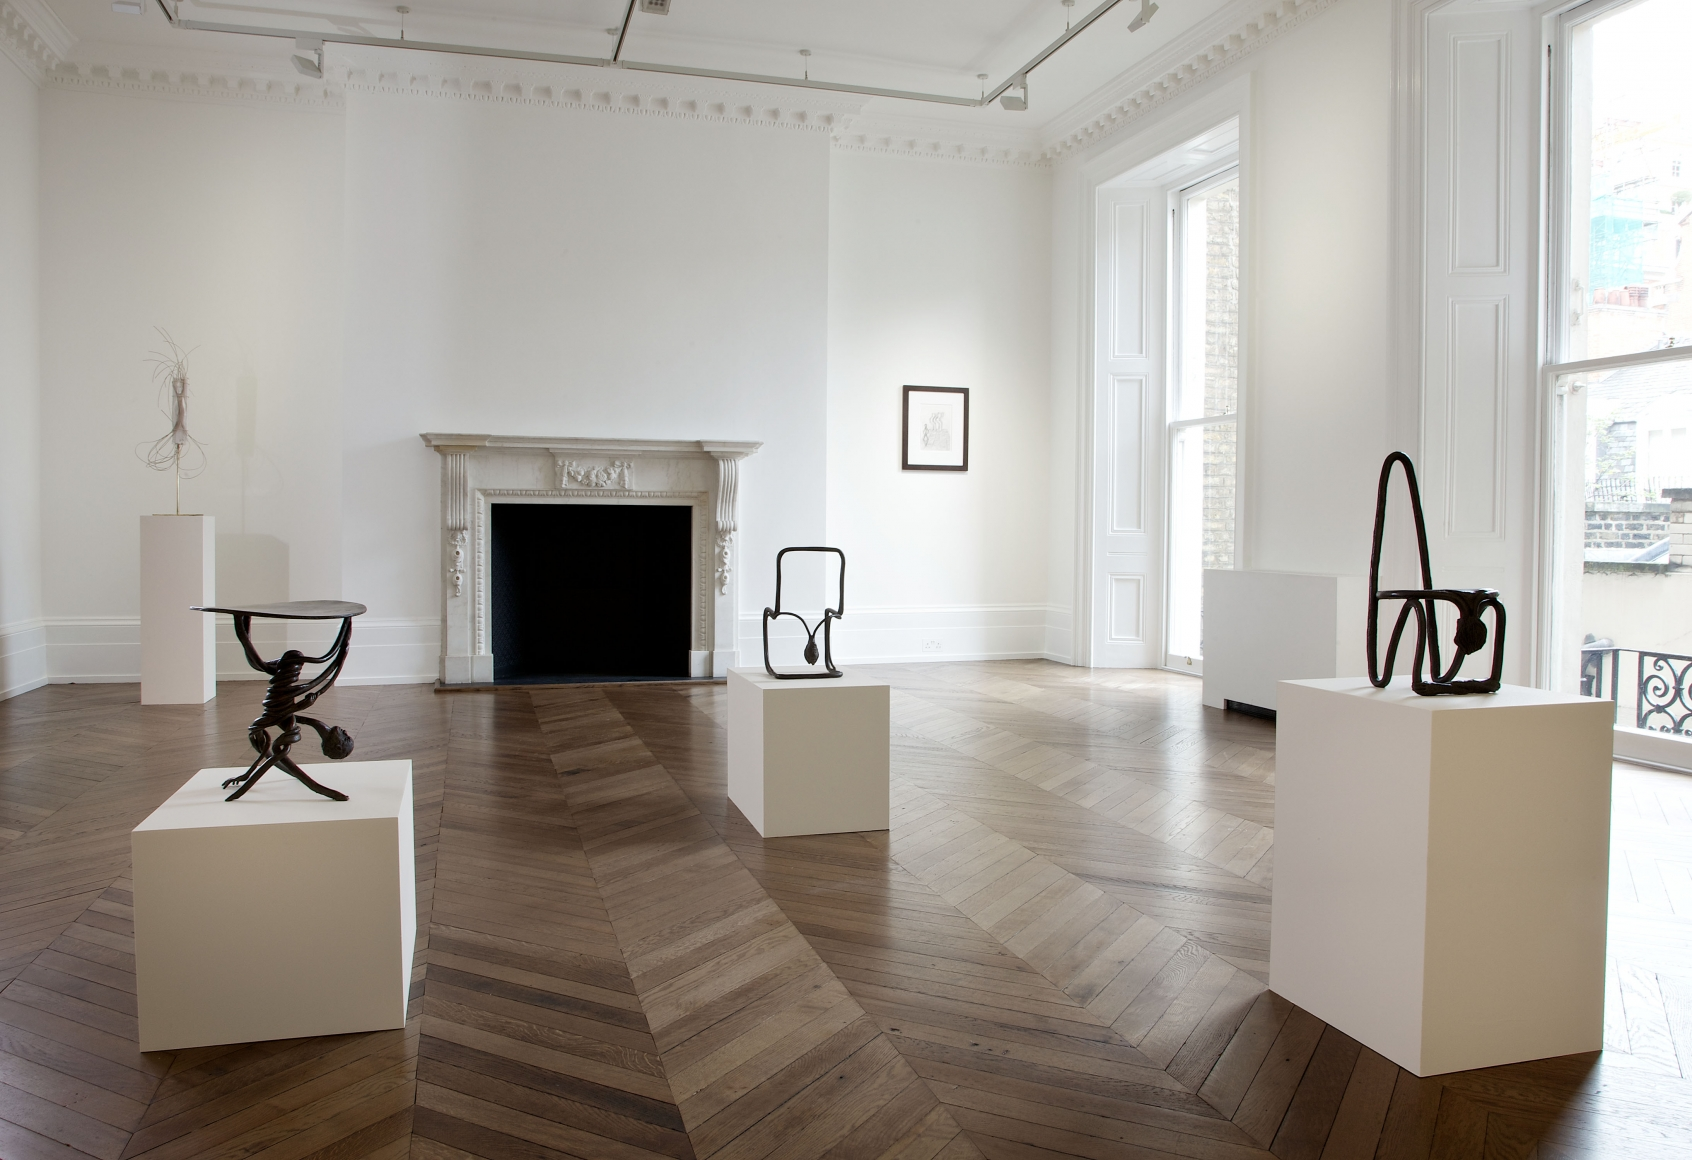 ENRICO DAVID New Works 17 September through 16 November 2013 MAYFAIR, LONDON, Installation View 6